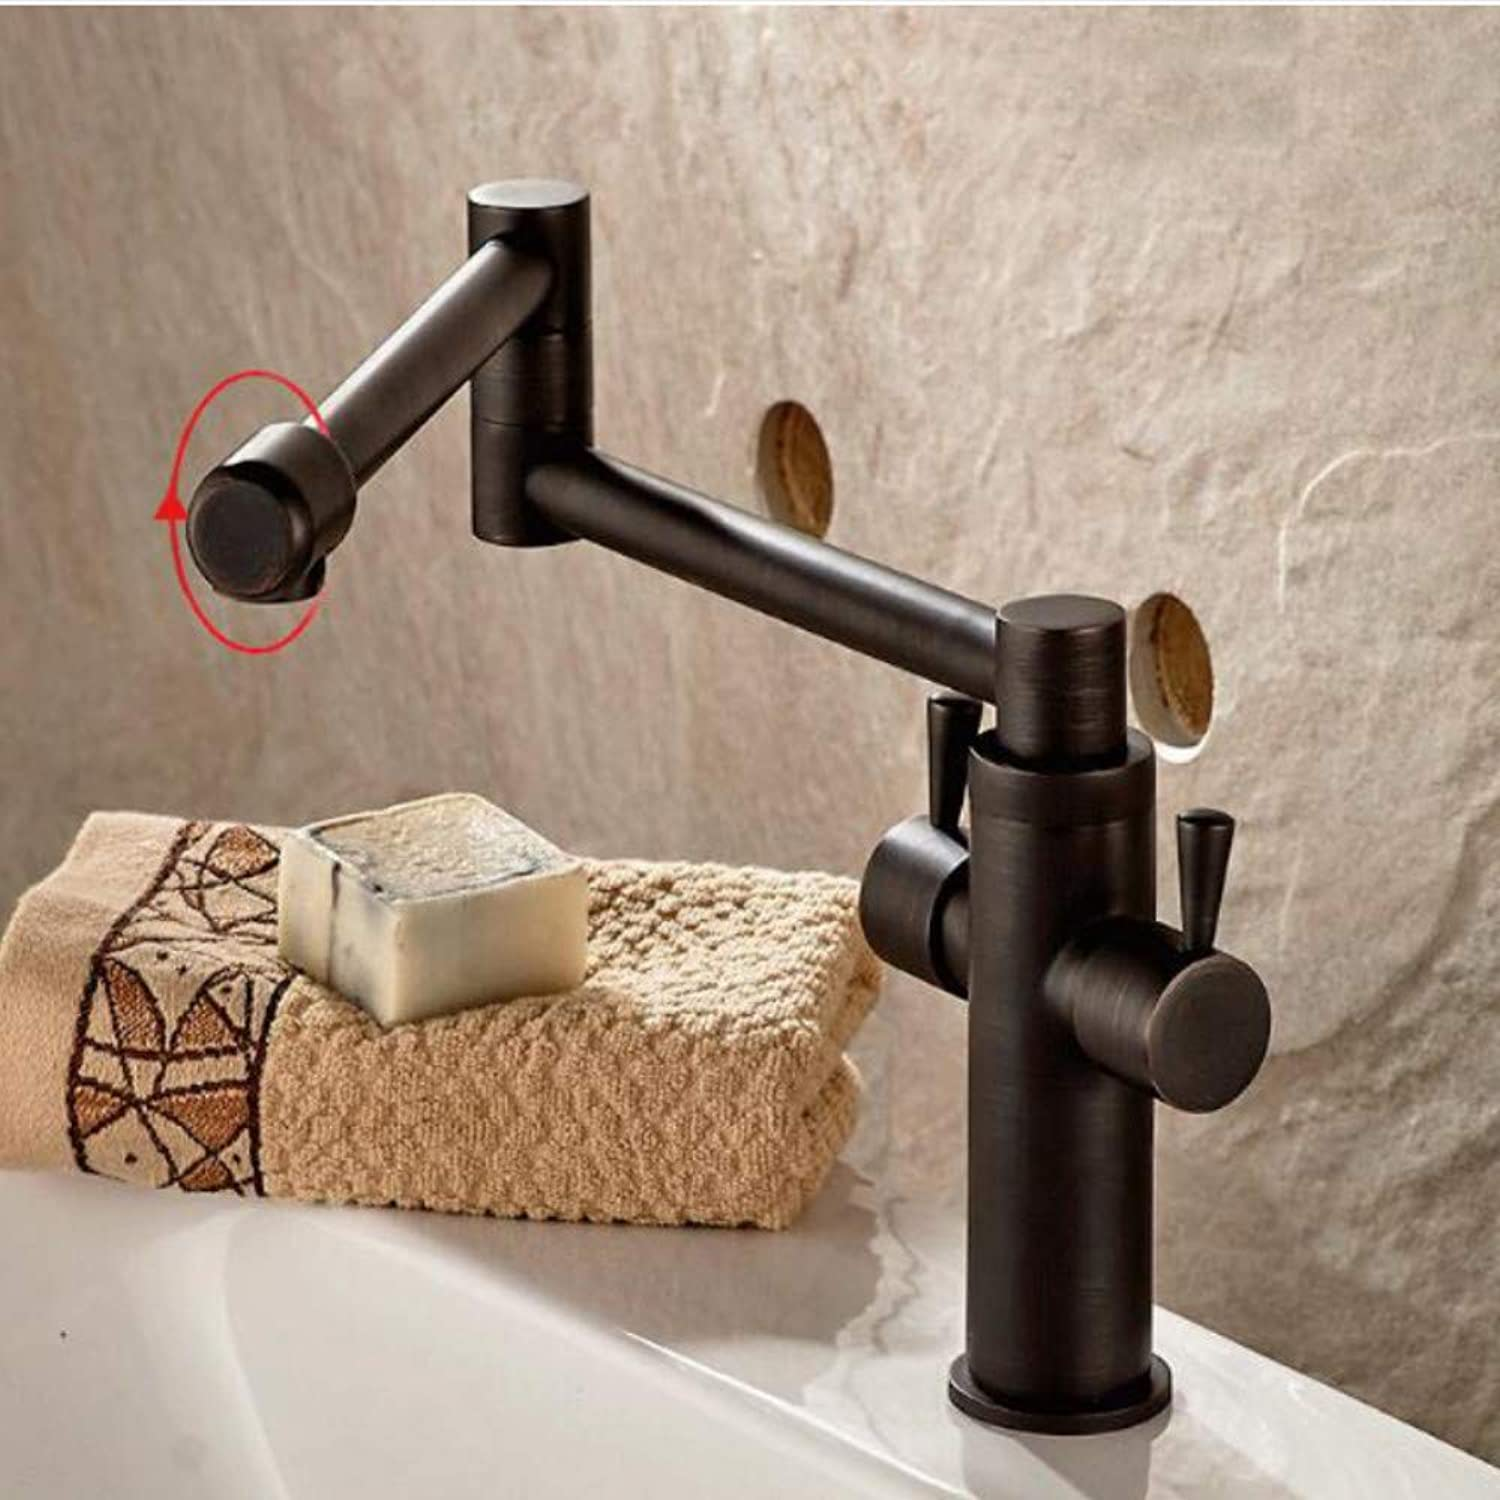 Lddpl New Style Black Bronze Copper Folding Kitchen Faucet Double Handles for Cold and Hot Water Mixer Xt509